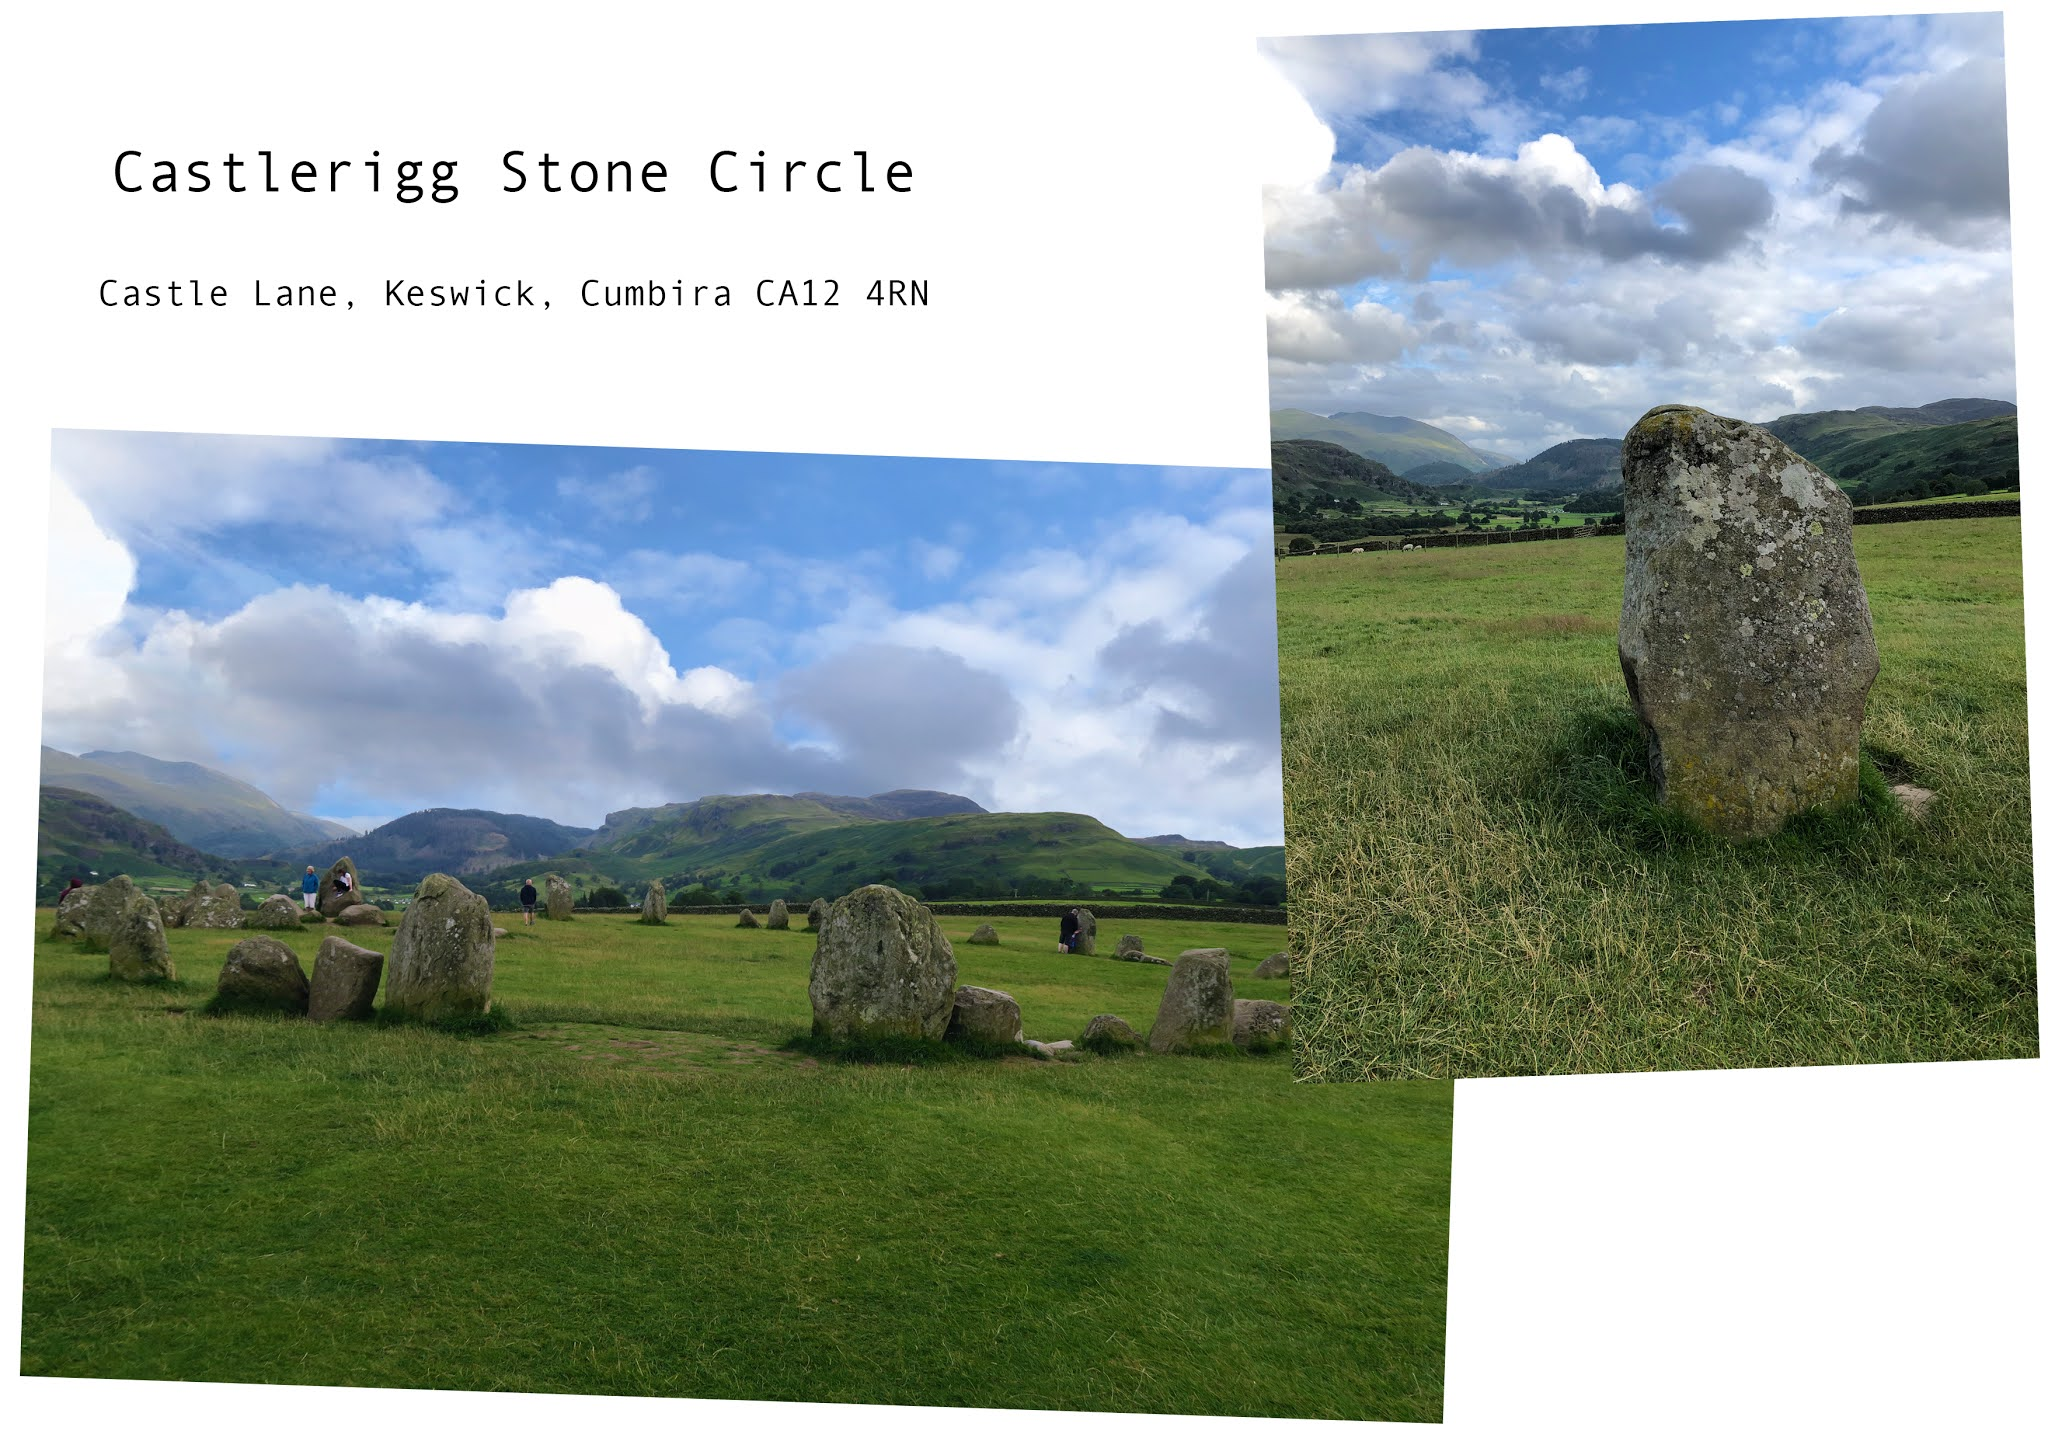 two images. the first image is a shot of the whole stone circle. the second image is a close up shot of one of the stones which is covered in a thin layer of moss. sweeping hills can be seen in the background of both images.